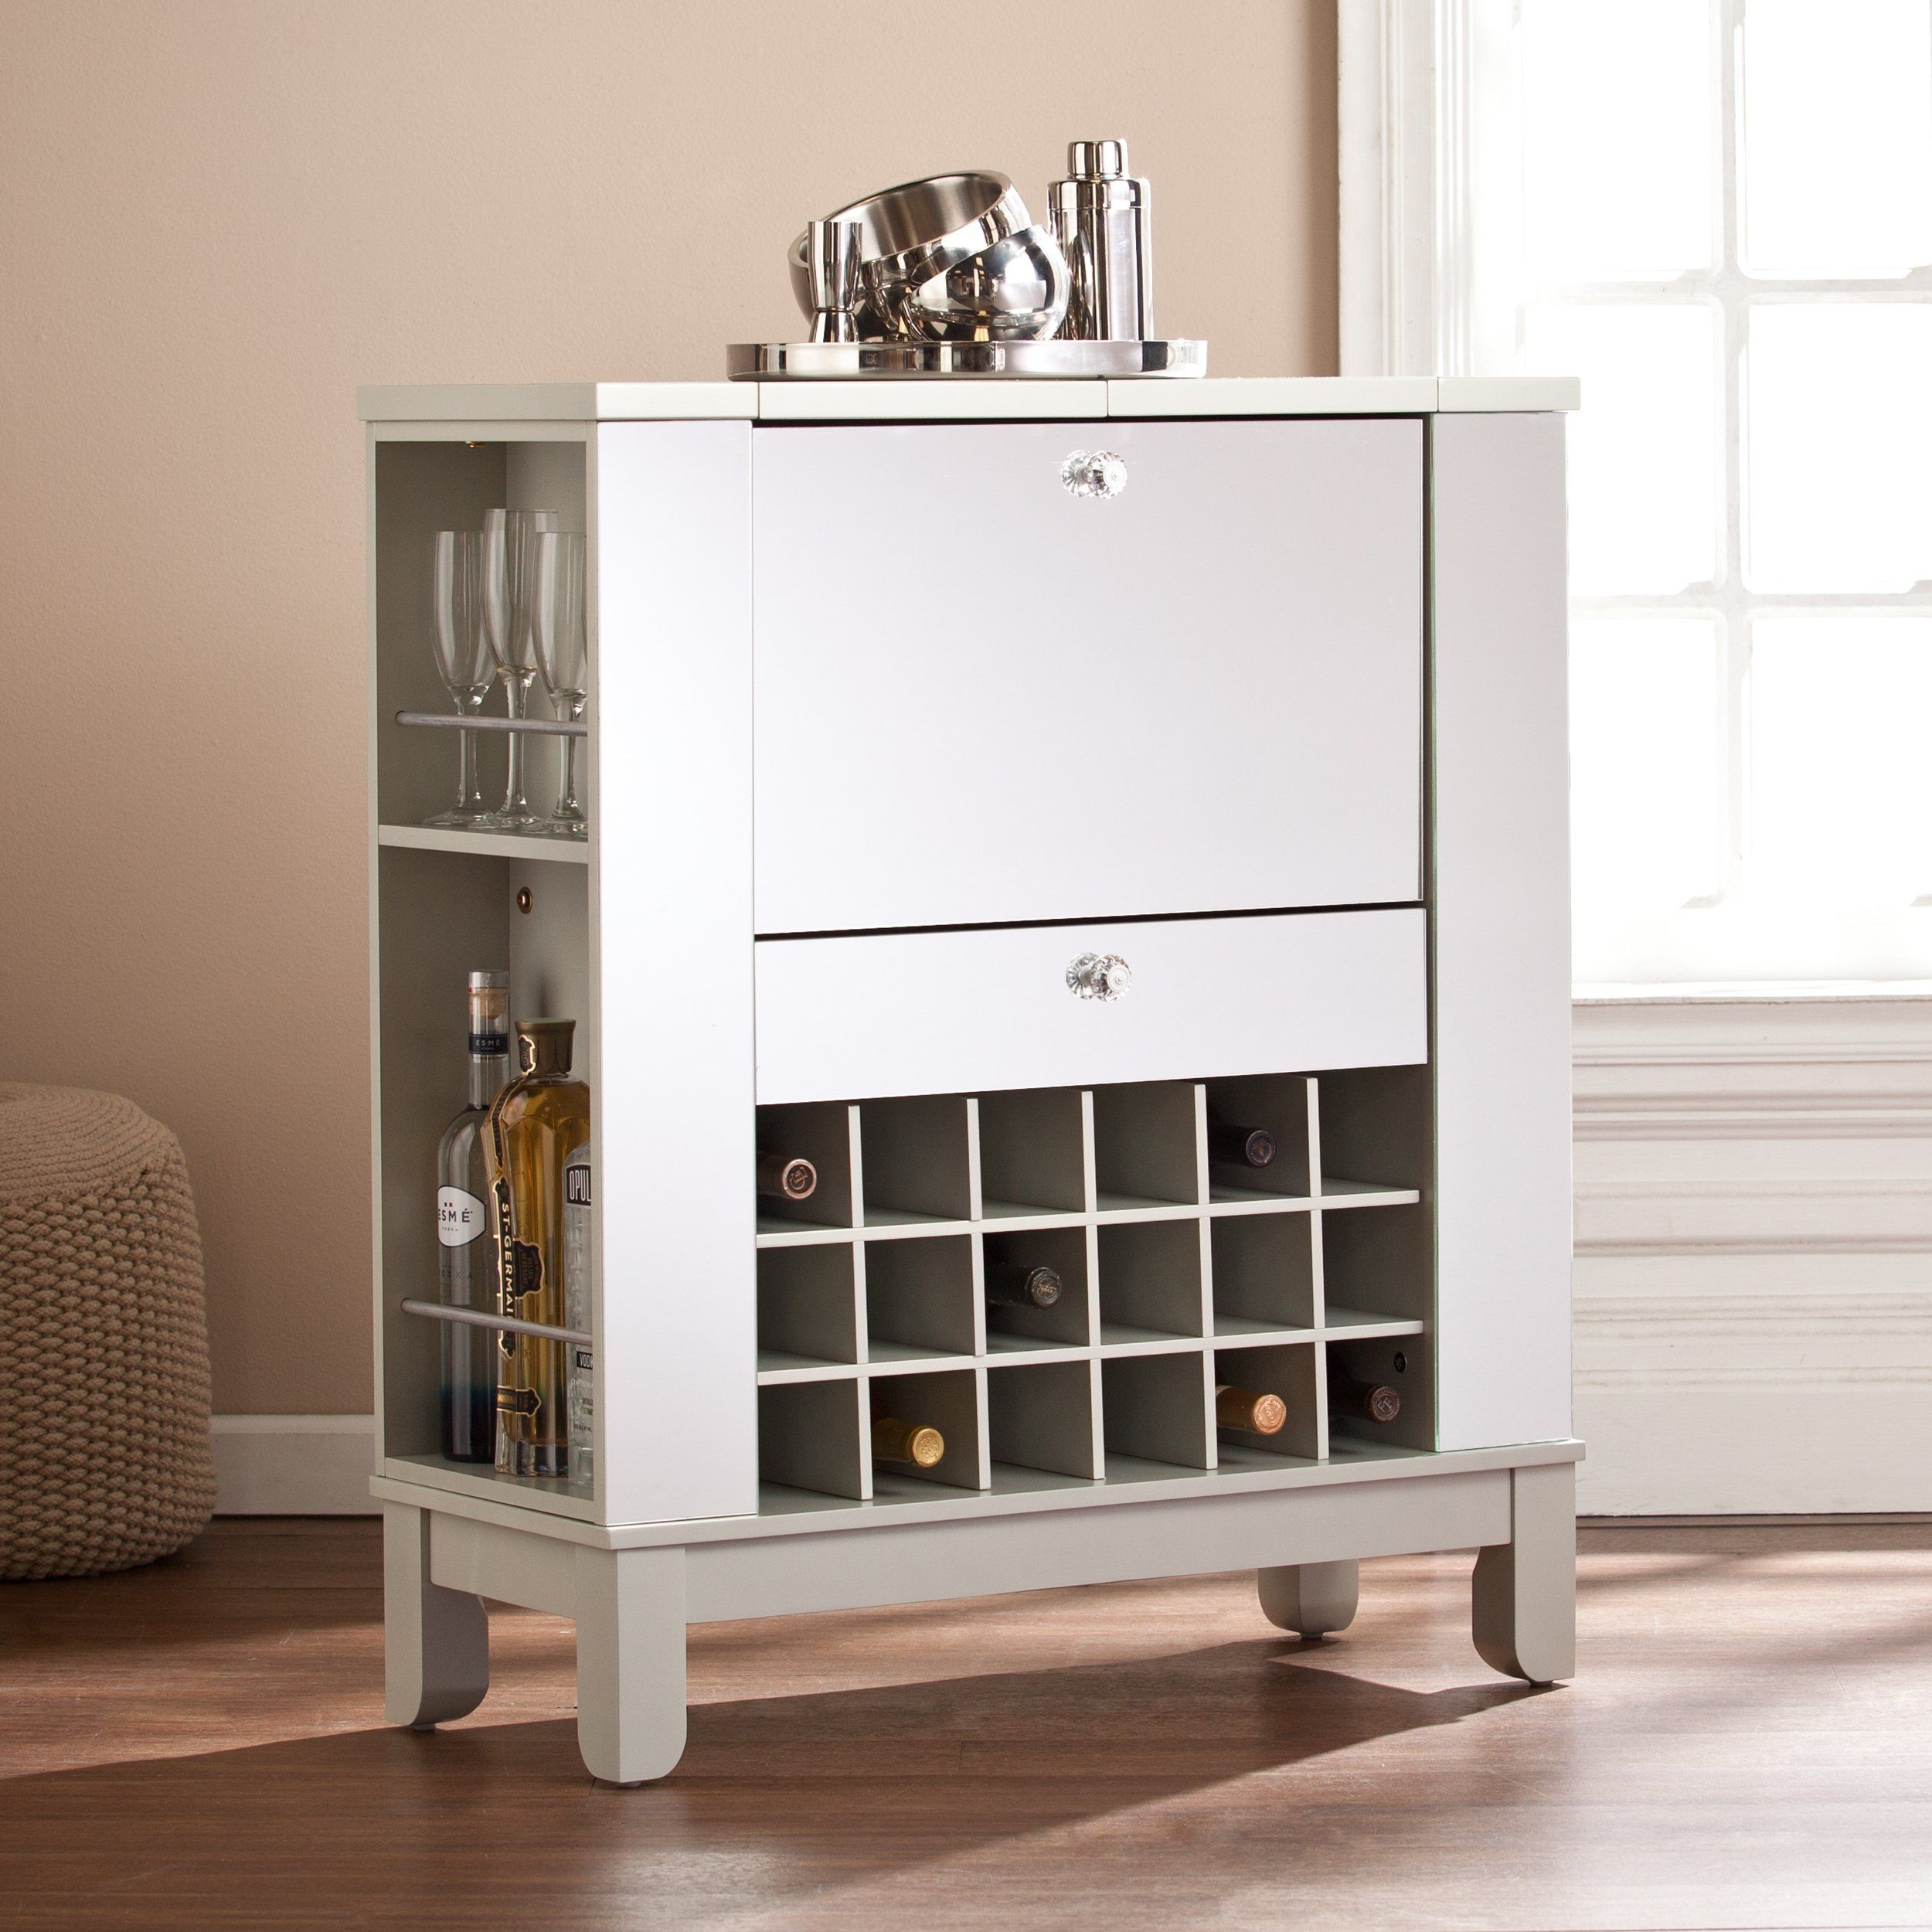 Ordinaire Barrett Bar Cabinet